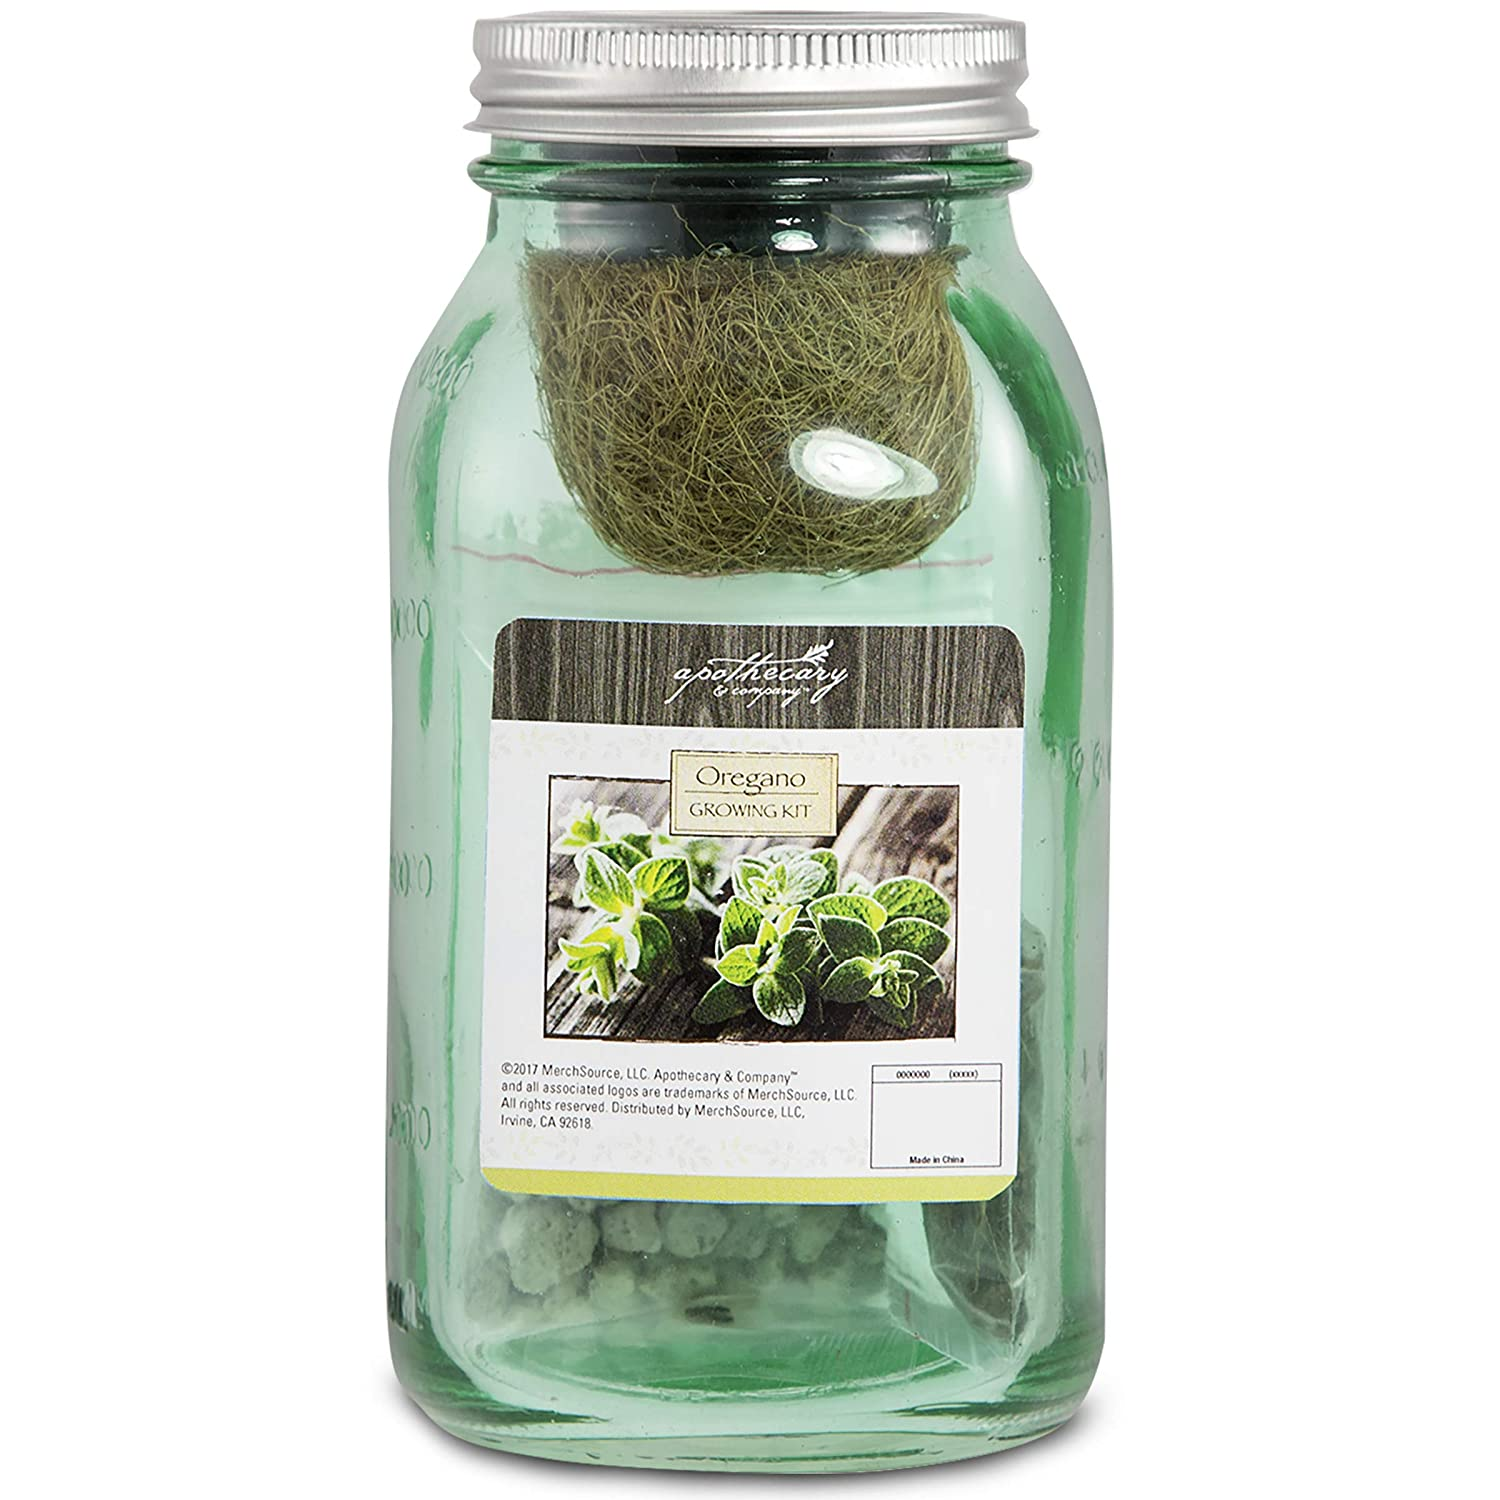 Apothecary Decorative Oregano Herb Growing Kit in Mason Jar